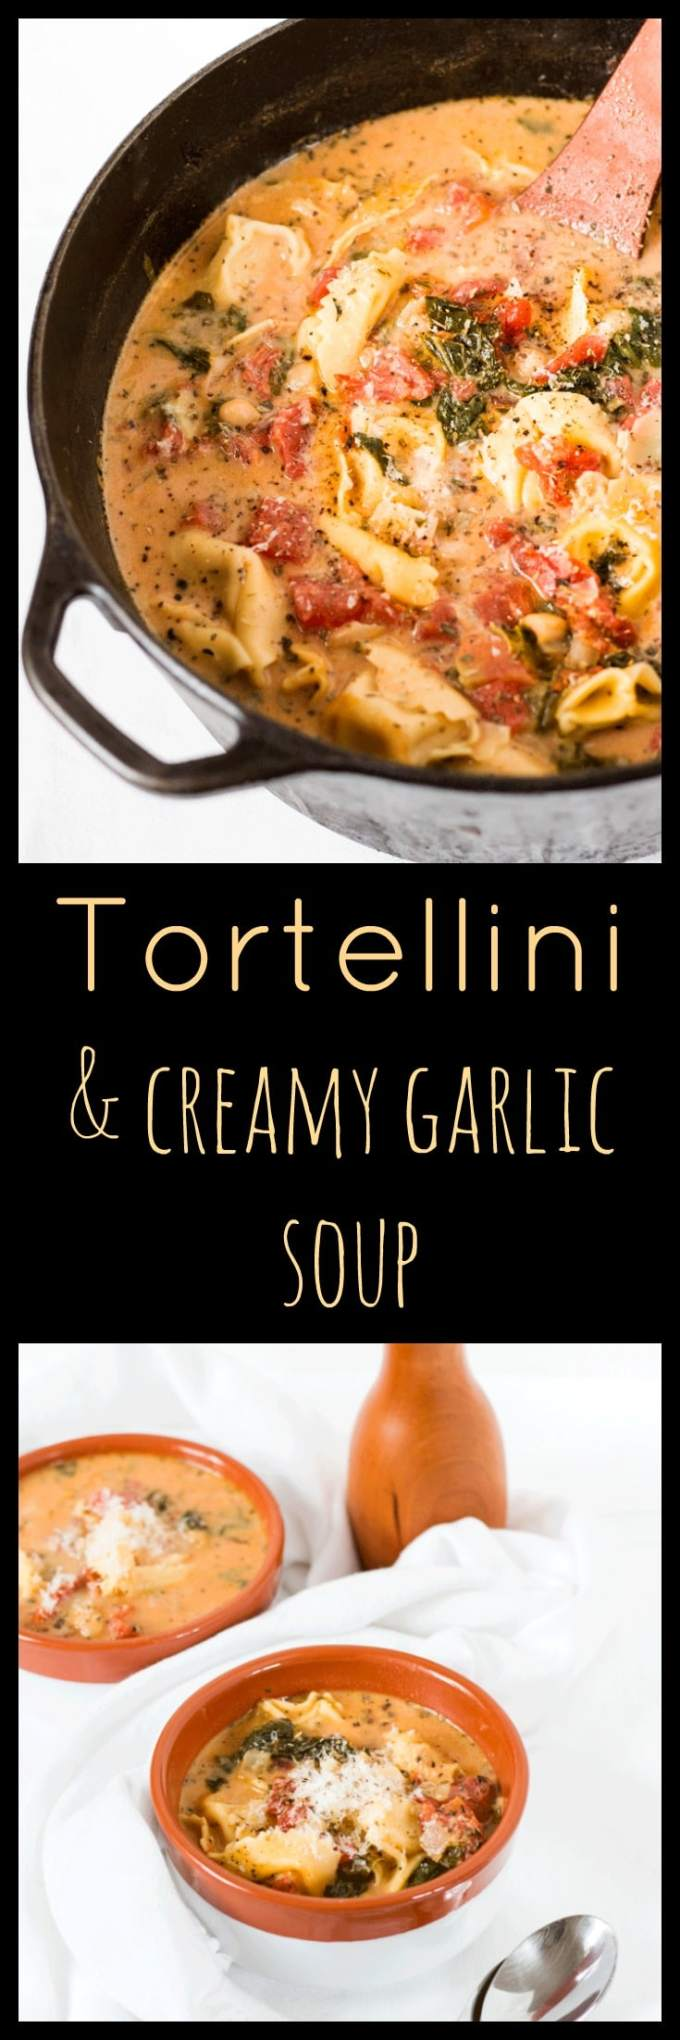 One Pot Tortellini and Creamy Garlic Soup. One pot, no fancy ingredients, freezer-friendly, kid-friendly and weeknight friendly. It ticks all the boxes